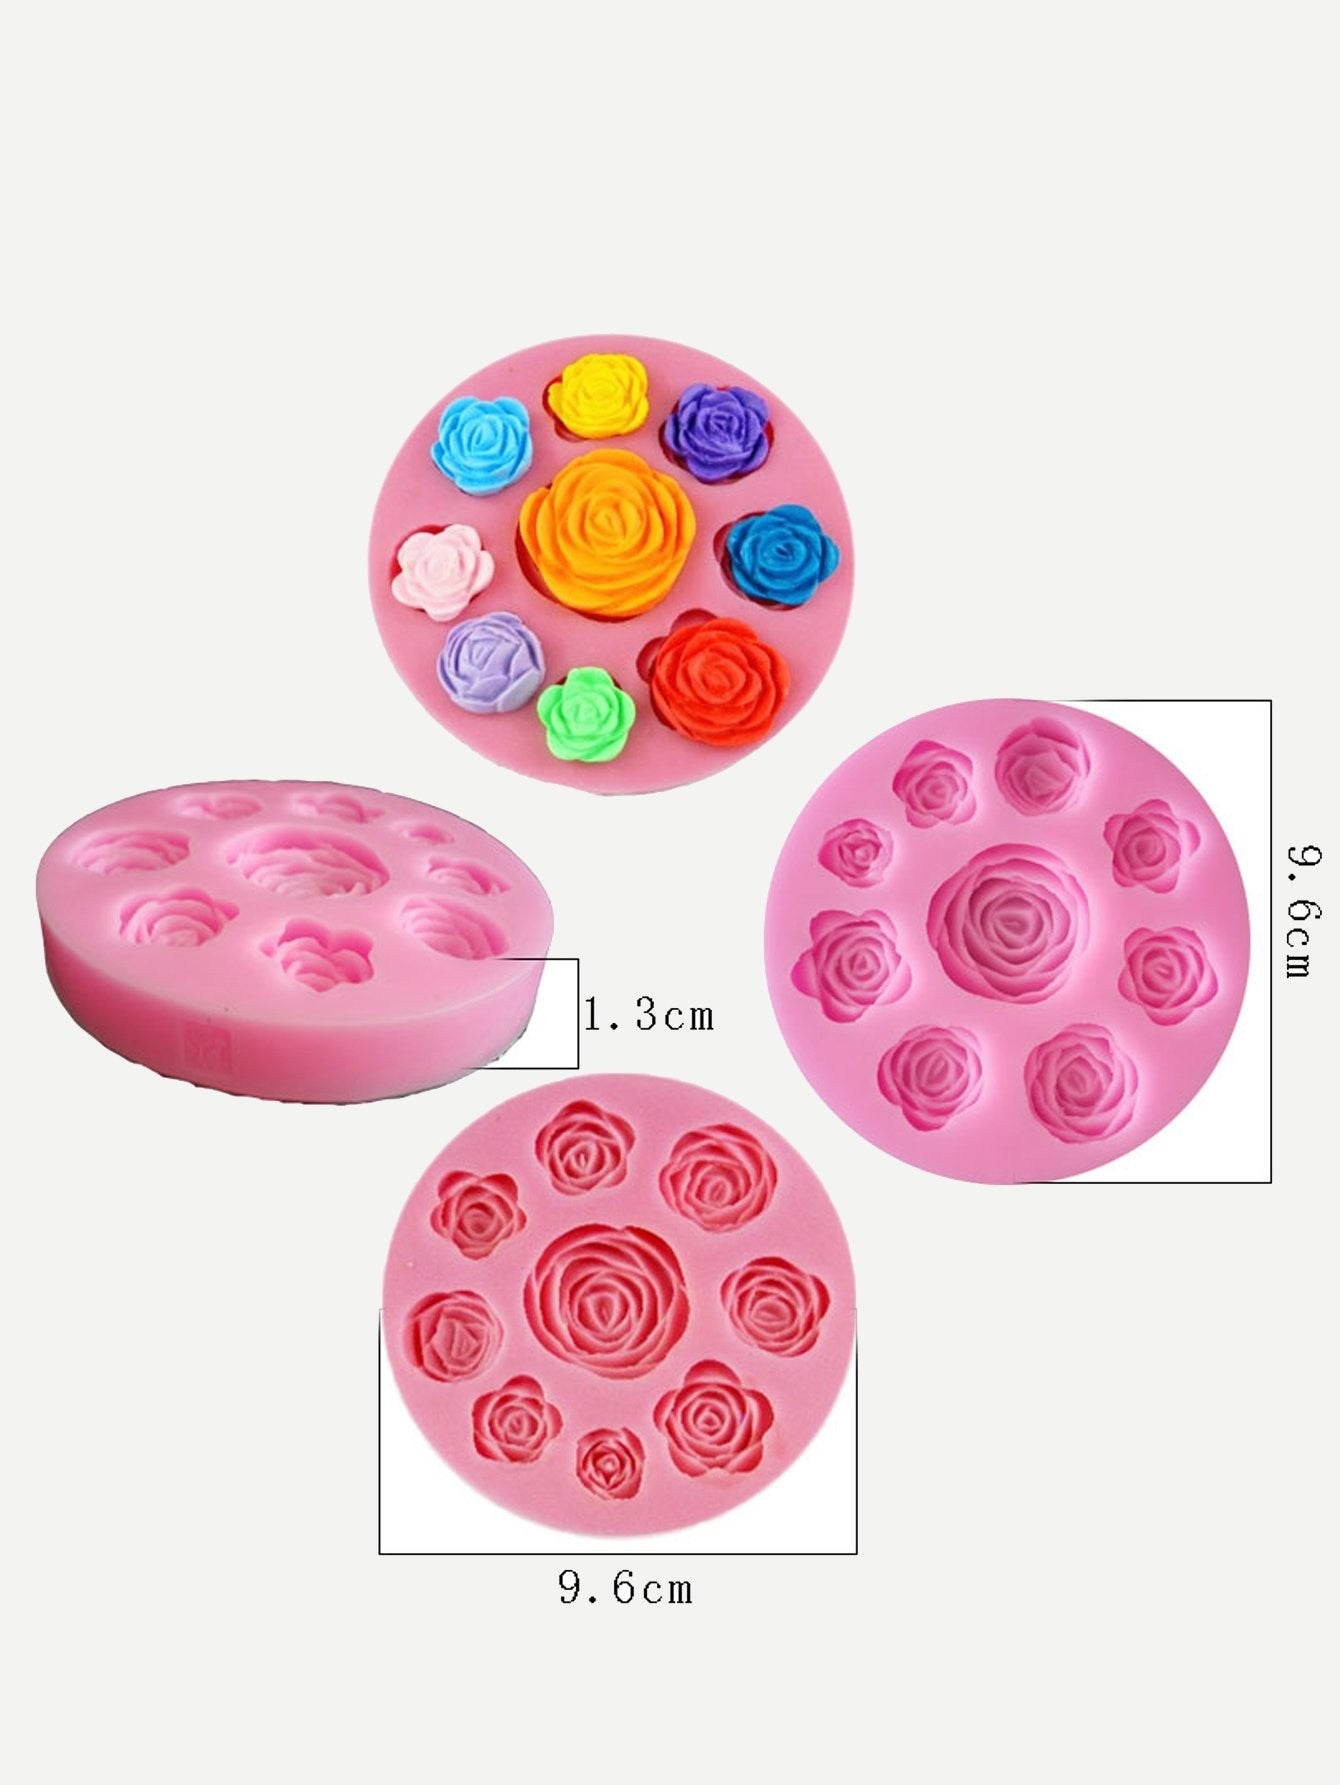 9 Compartment Flower Baking Mold 1pc